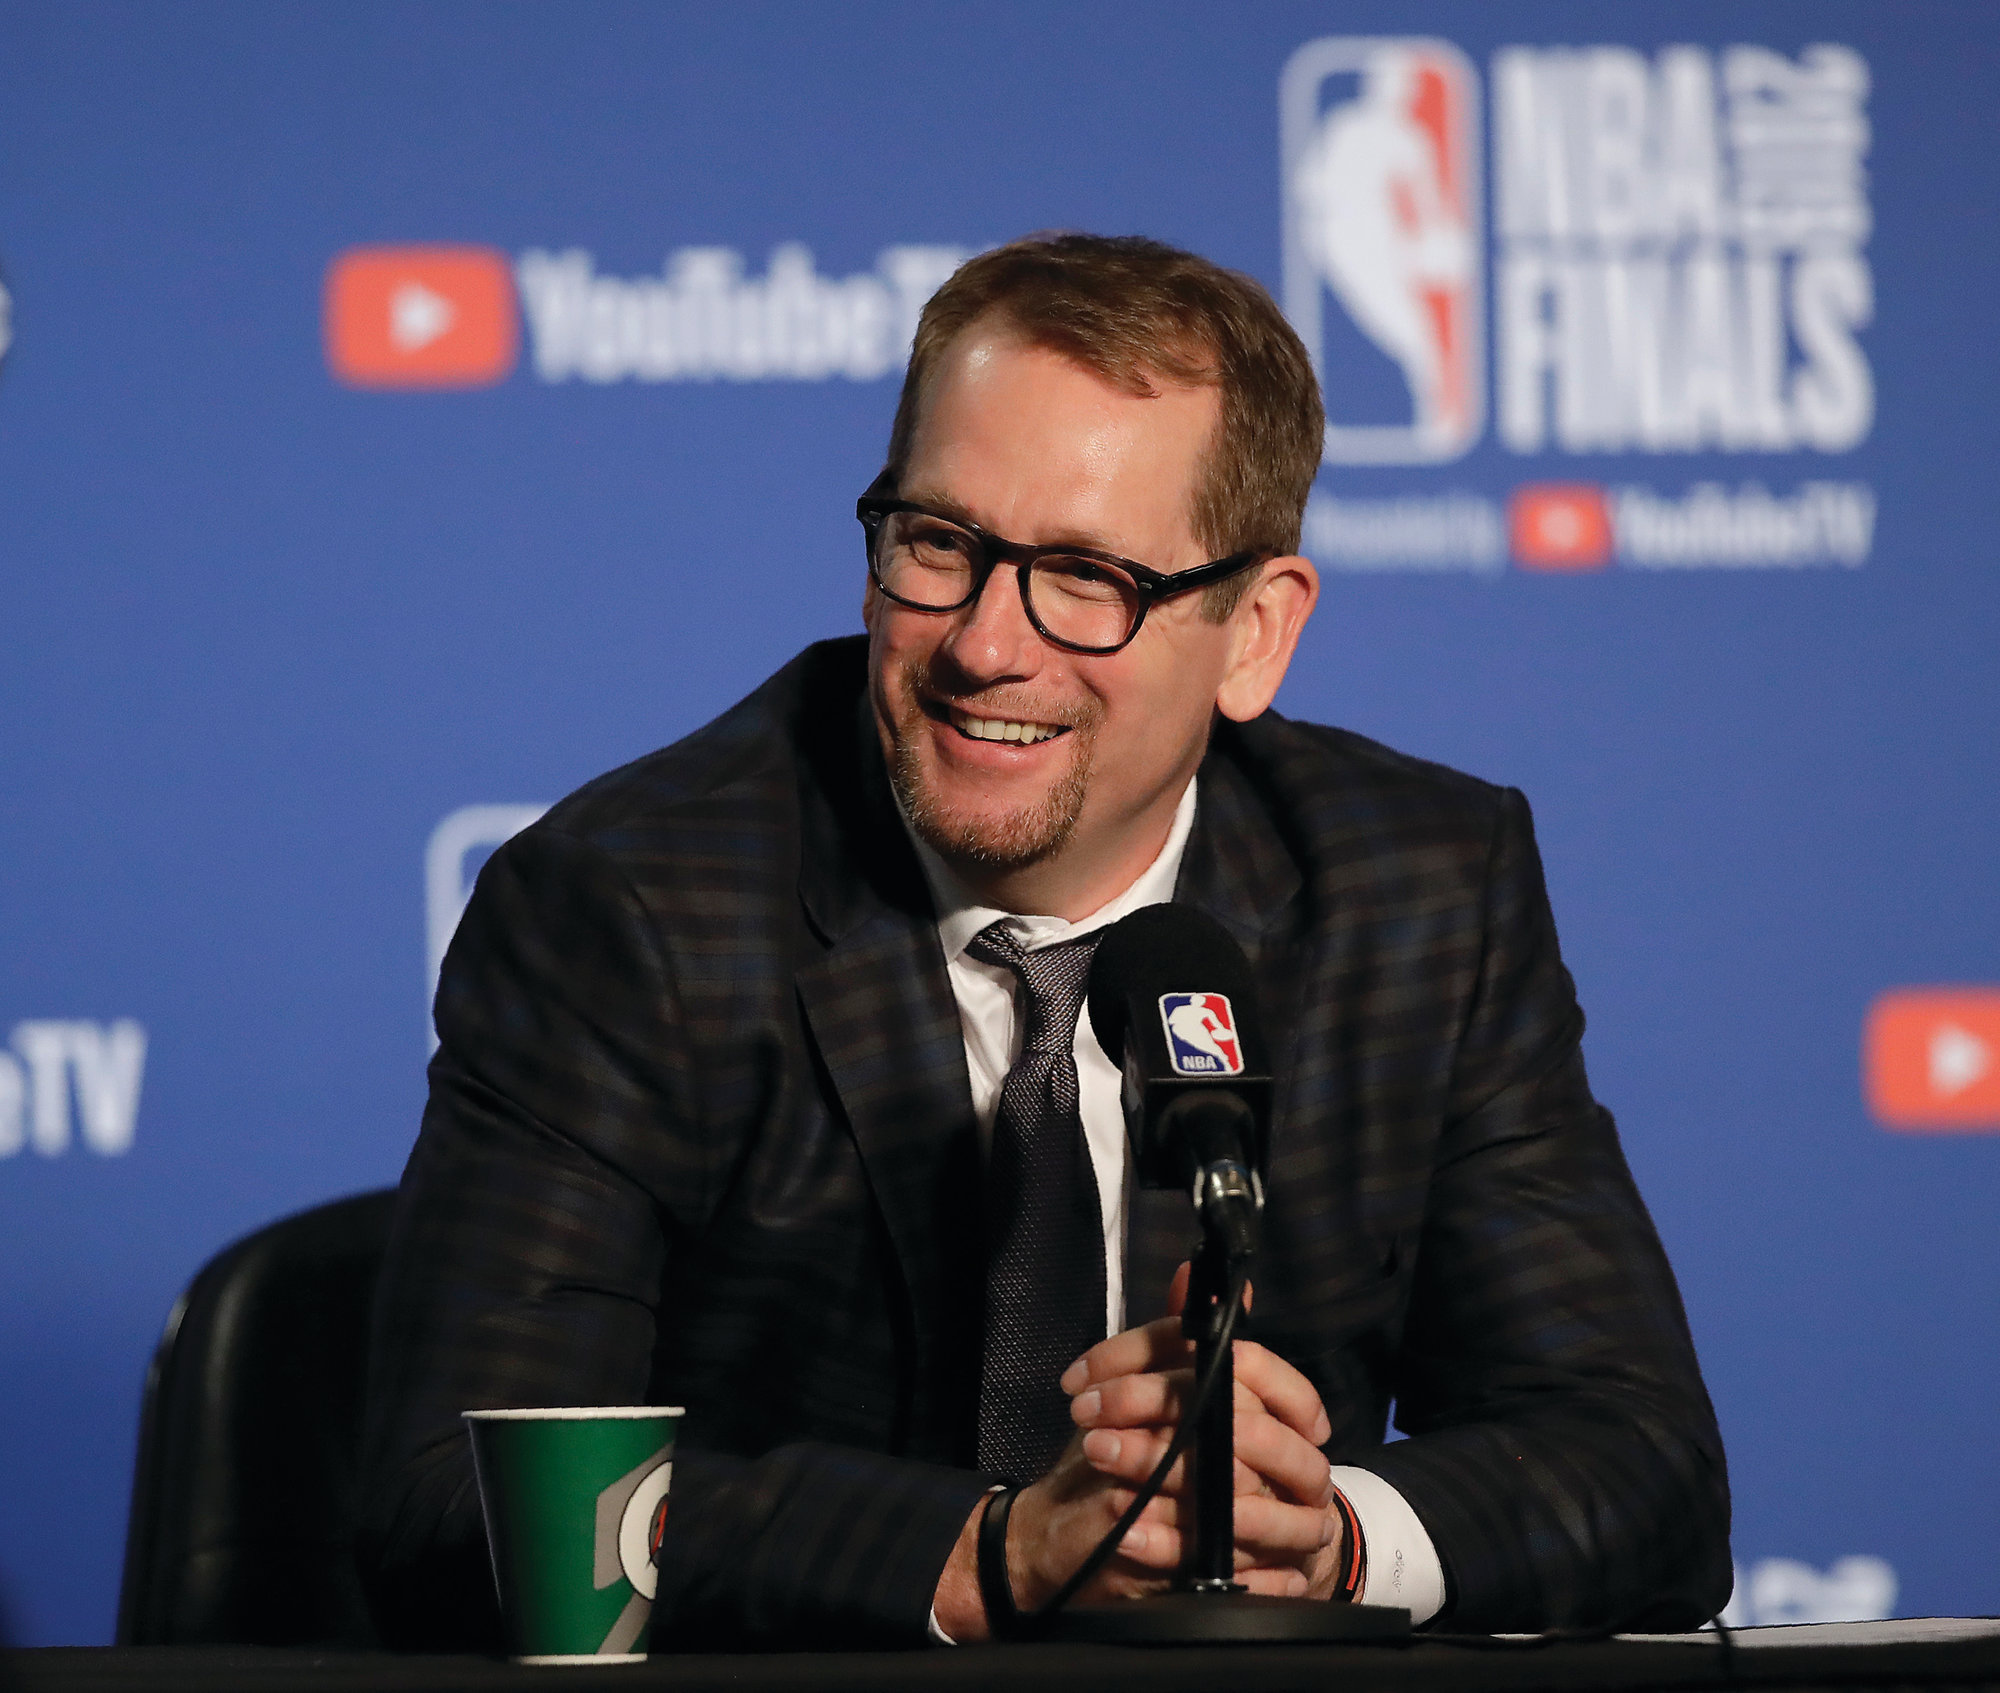 THE ASSOCIATED PRESSFirst-year Toronto head coach Nick Nurse led the Raptors to an NBA title as Toronto beat Golden State 4-2 in the best-of-7 NBA Finals.